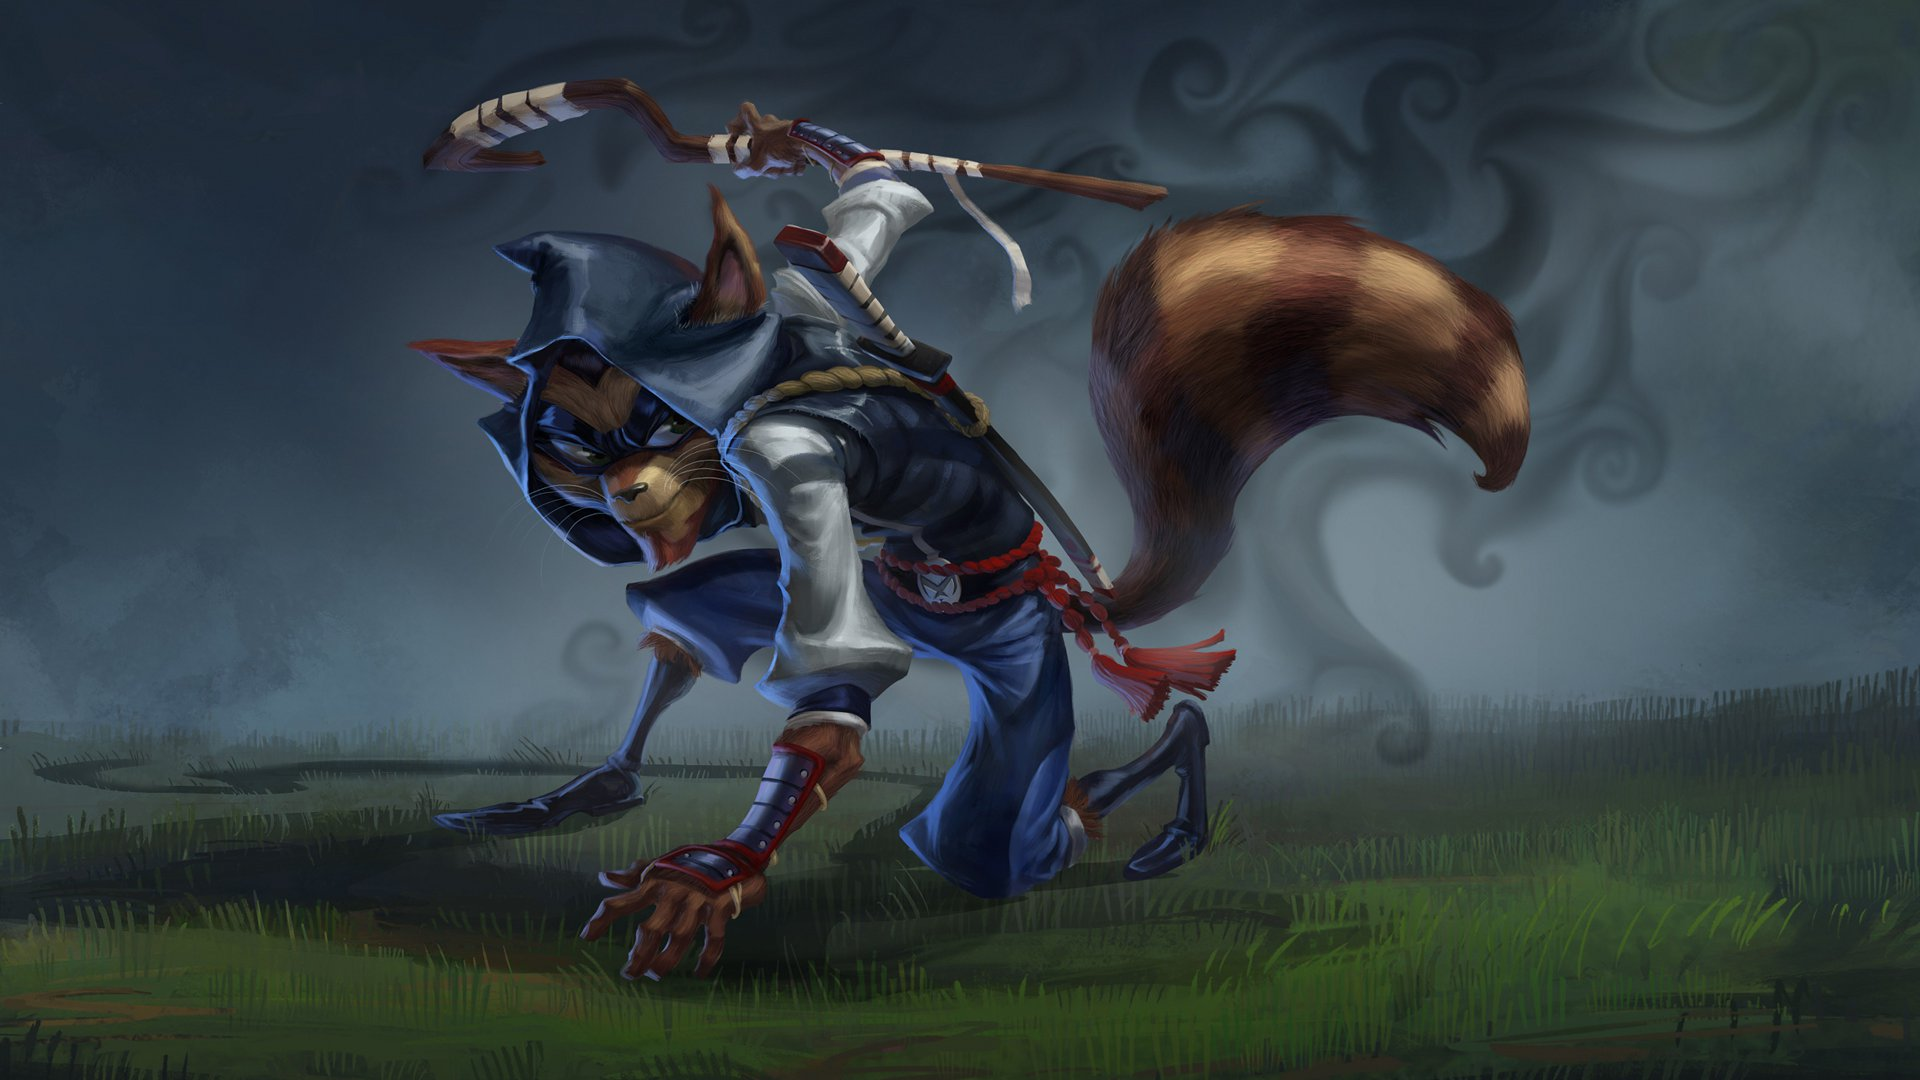 Video Game   Sly Cooper Cooper Sly Wallpaper 1920x1080